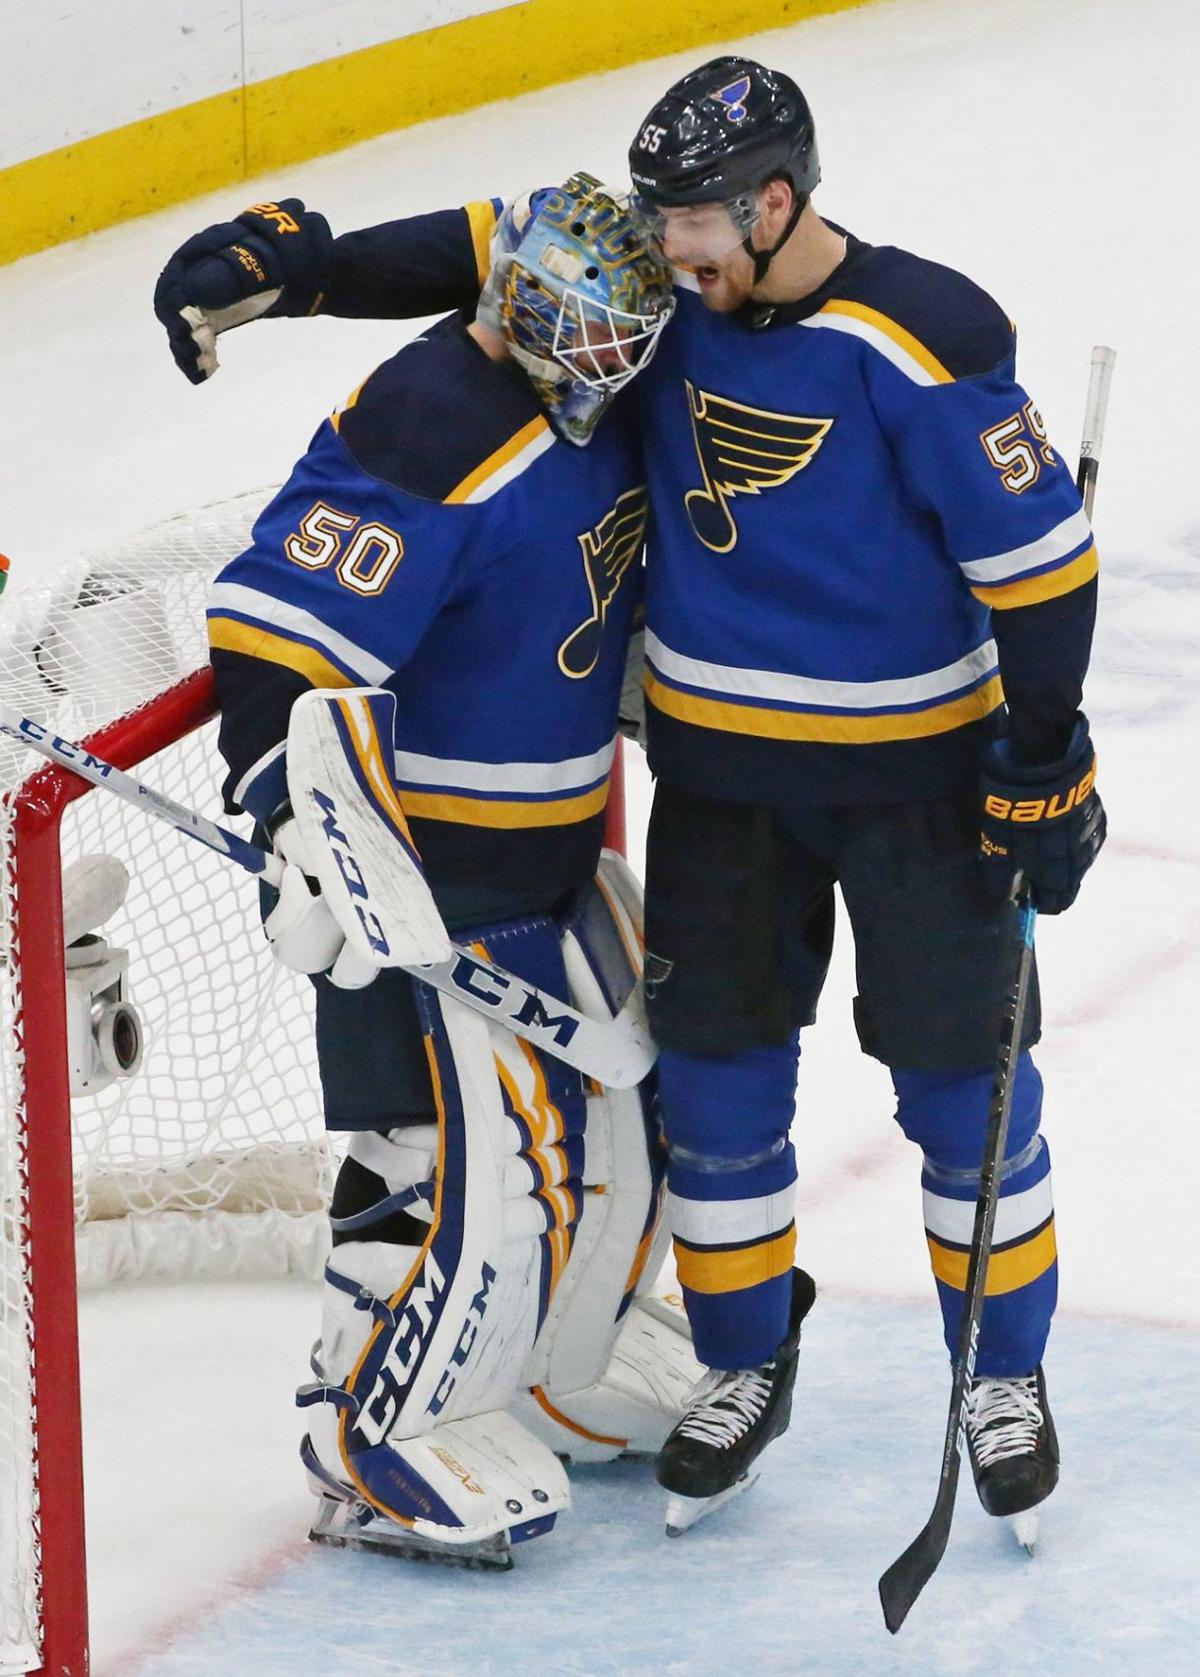 Photos: St. Louis Blues defeat Sharks to tie Western Conference Final series